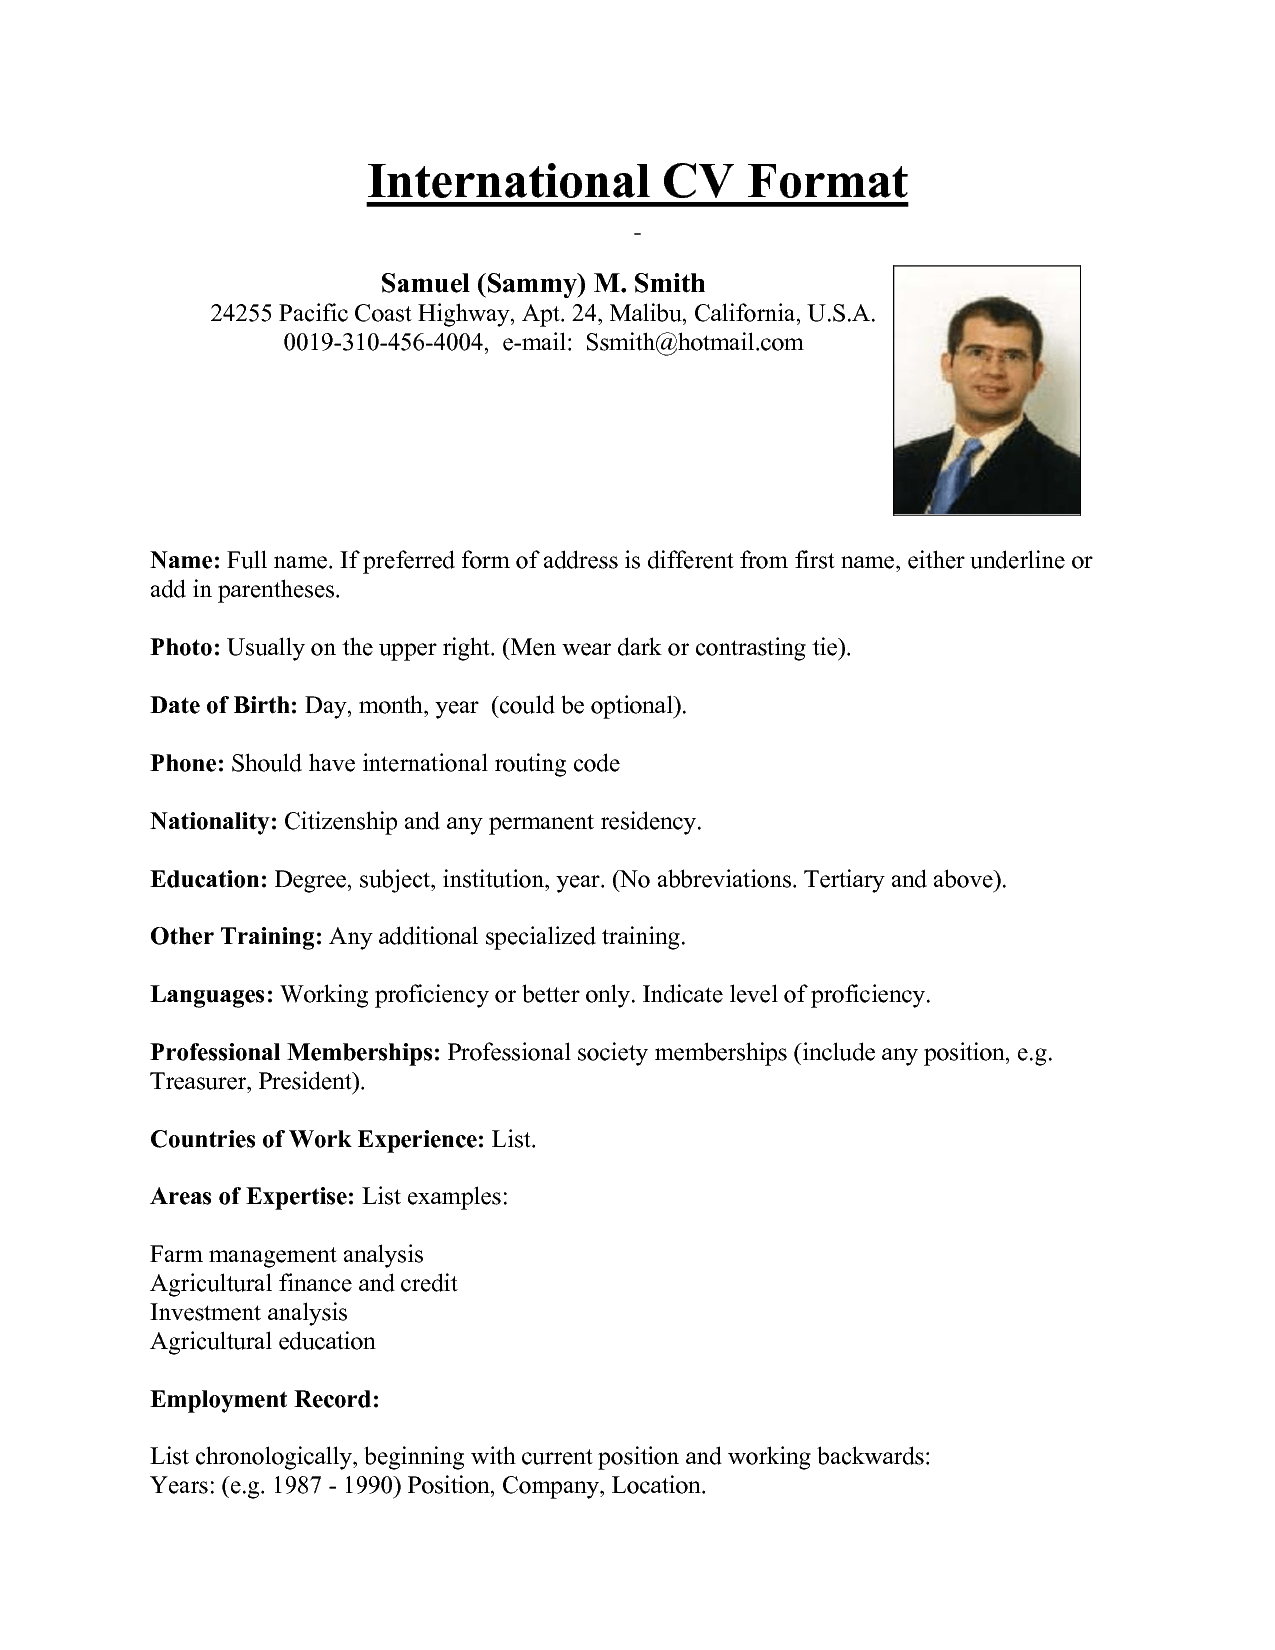 cv english us example resume samples writing guides for all cv english us example cv examples university of kent english cv example us english cv example